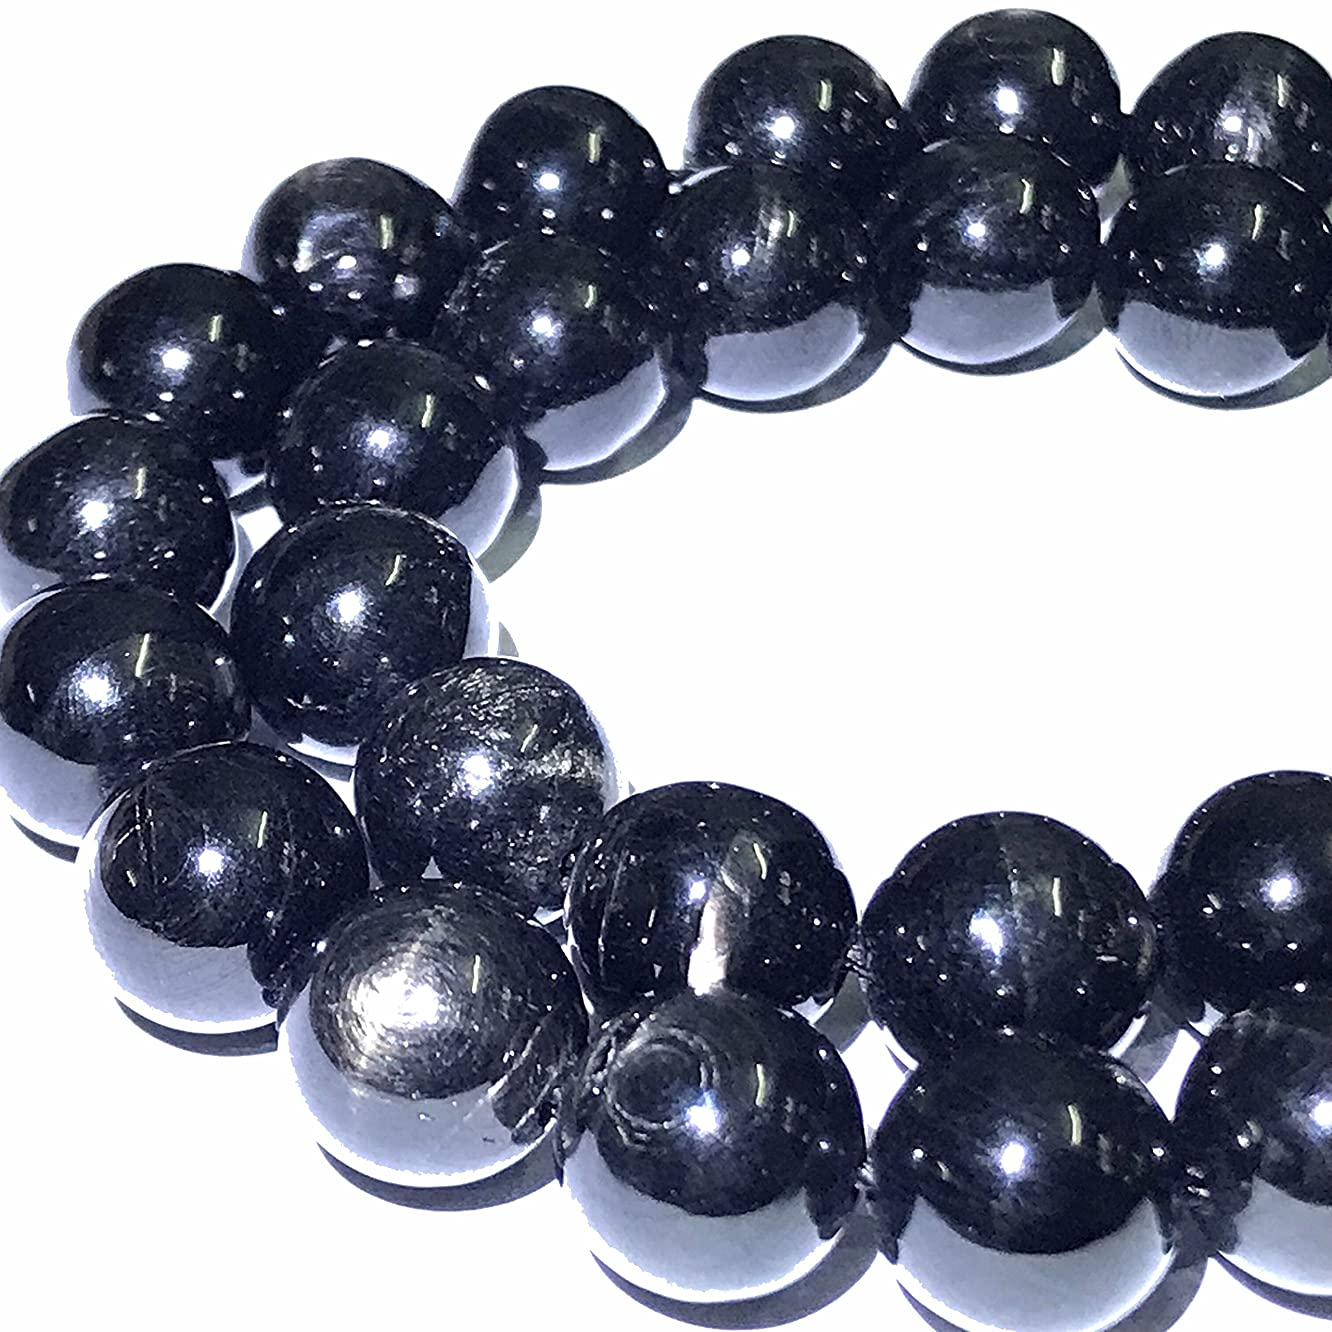 [ABCgems] Extremely Rare Canadian Rainbow Hypersthene (Piano Black- Exquisite Flash) 12mm Smooth Round Beads for Beading & Jewelry Making